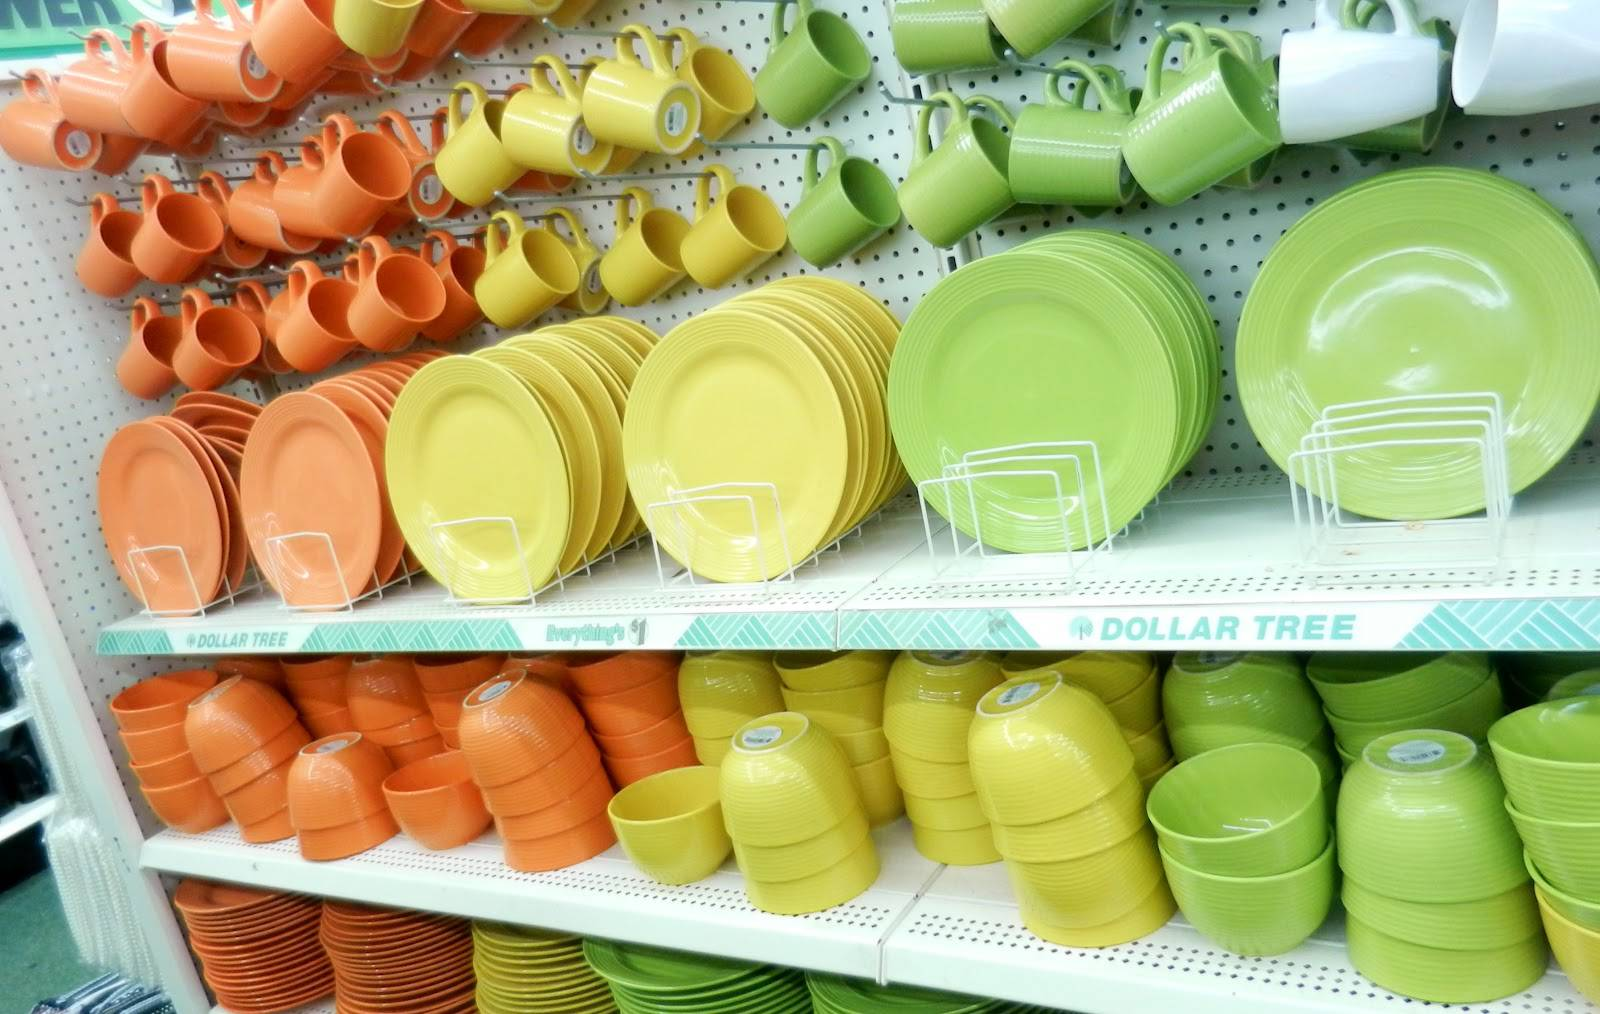 10 Things To Buy And 10 To Avoid In Dollar Stores_10